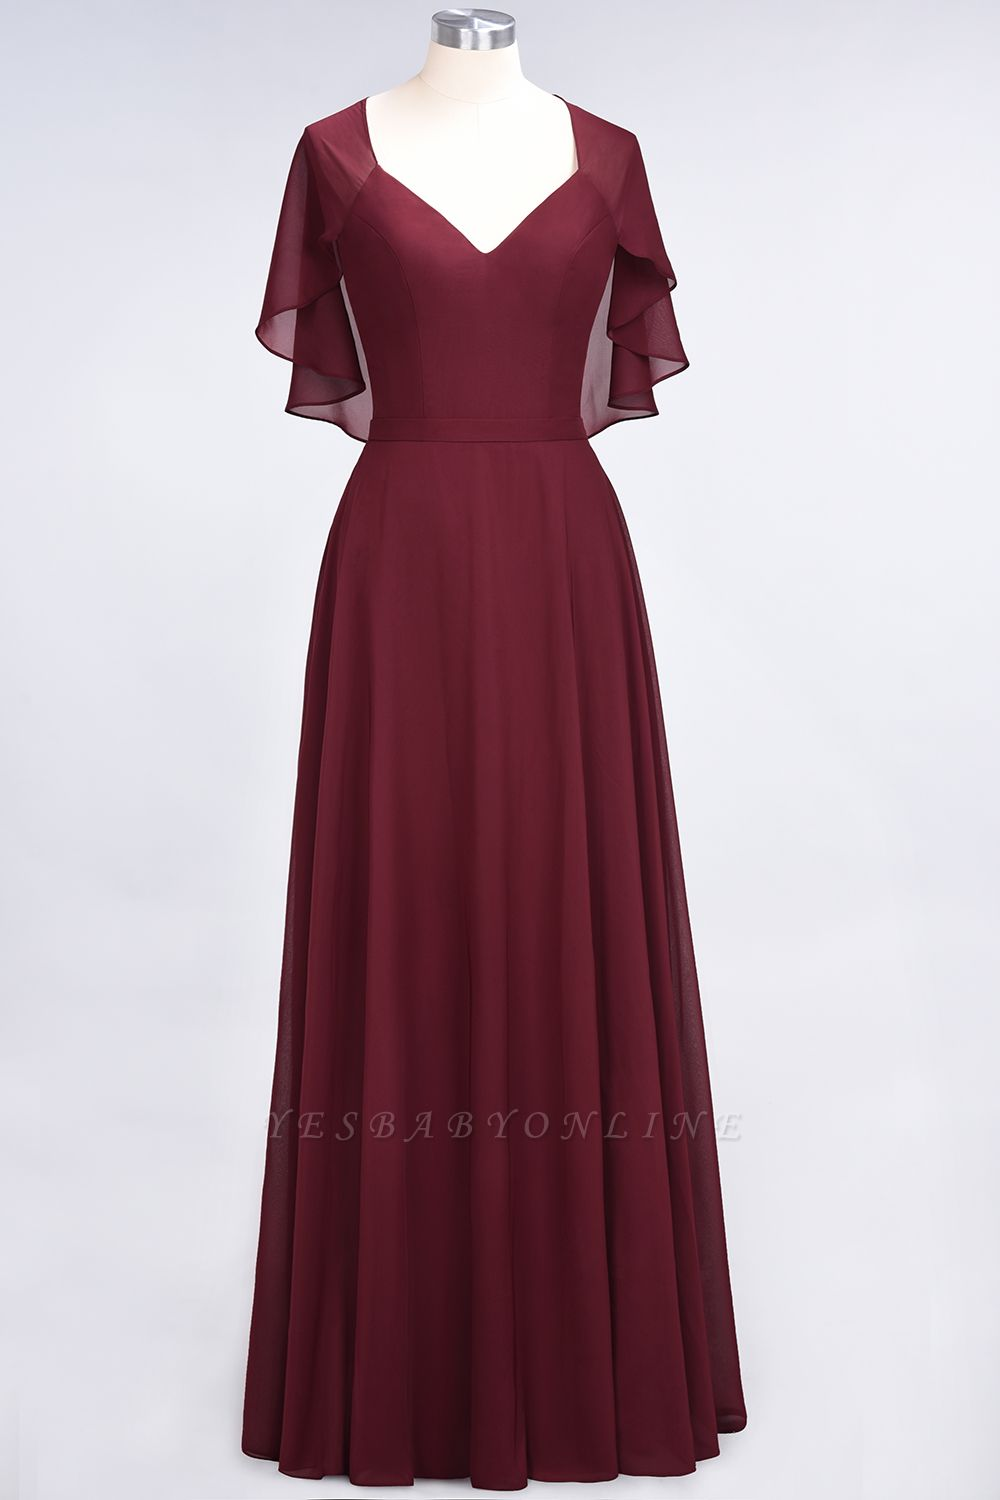 A-Line V-Neck short-sleeves Floor-Length Satin Bridesmaid Dress